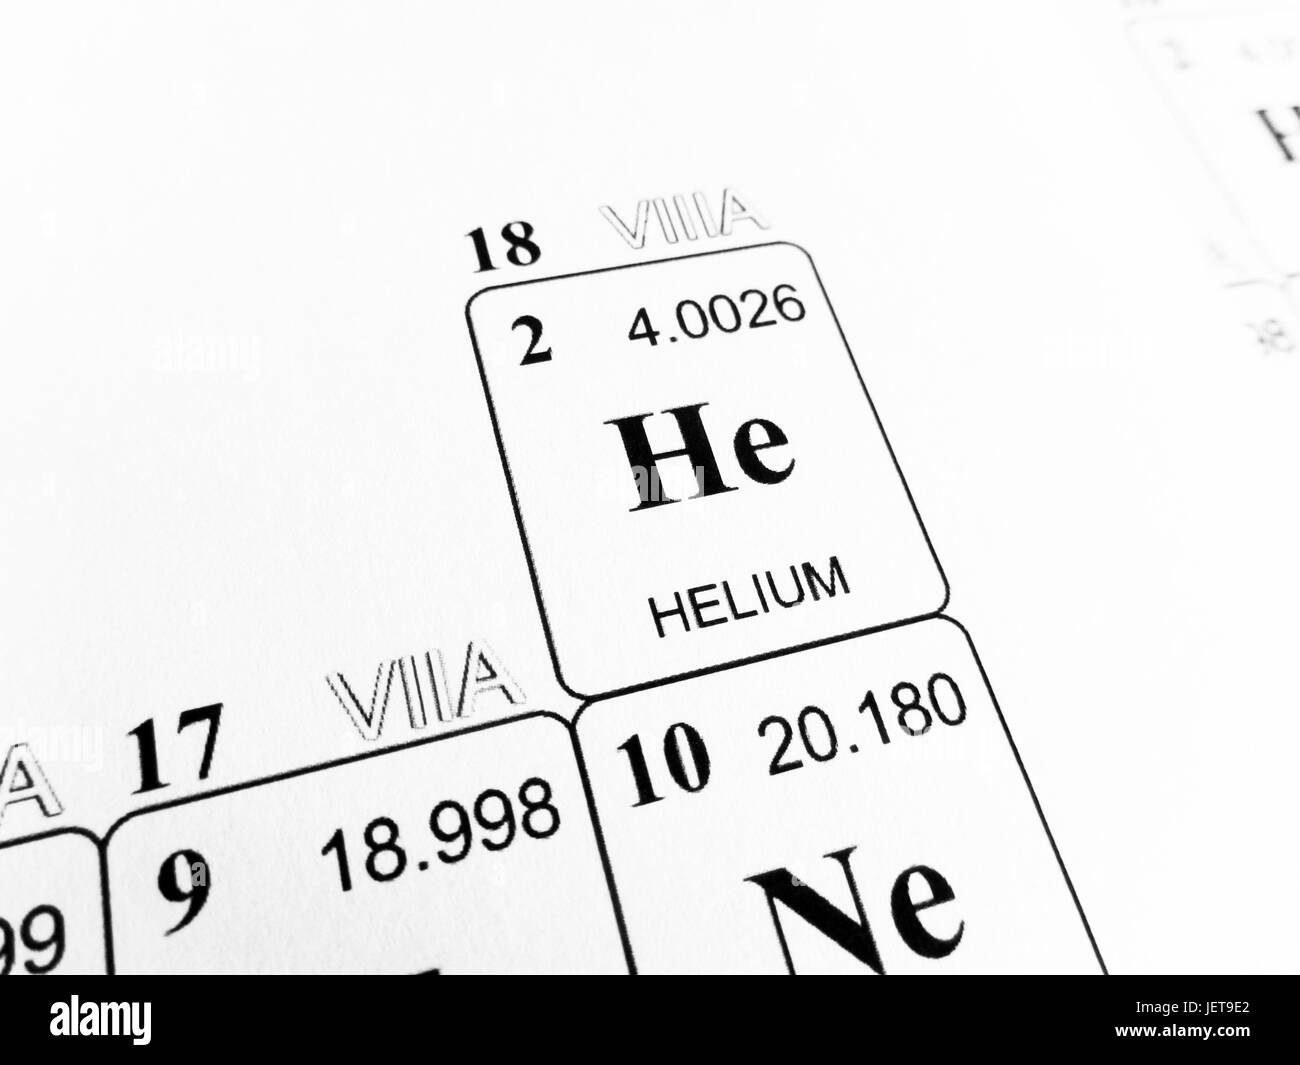 Oxygen facts periodic table choice image periodic table images helium periodic table facts image collections periodic table images helium periodic table facts choice image periodic gamestrikefo Gallery